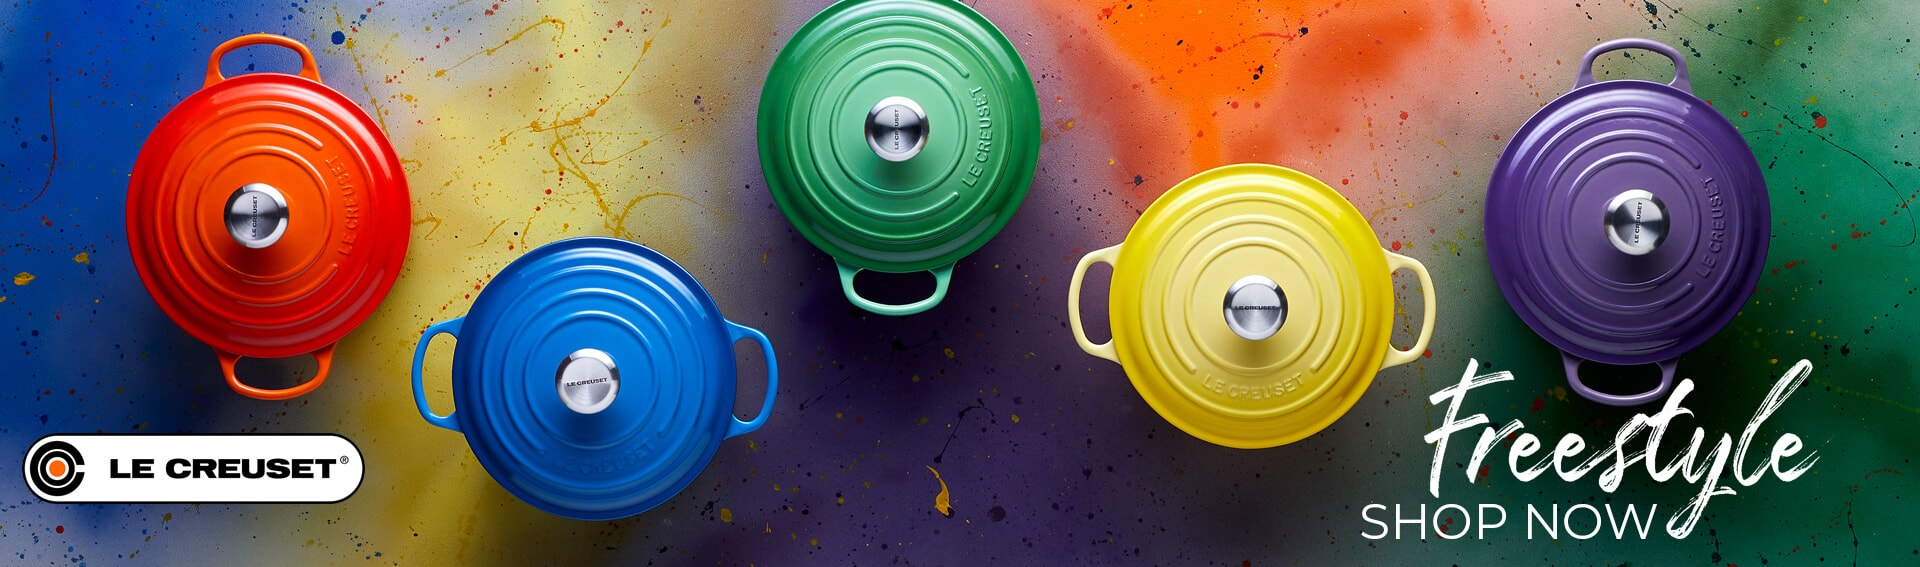 Le Creuset - Freestyle